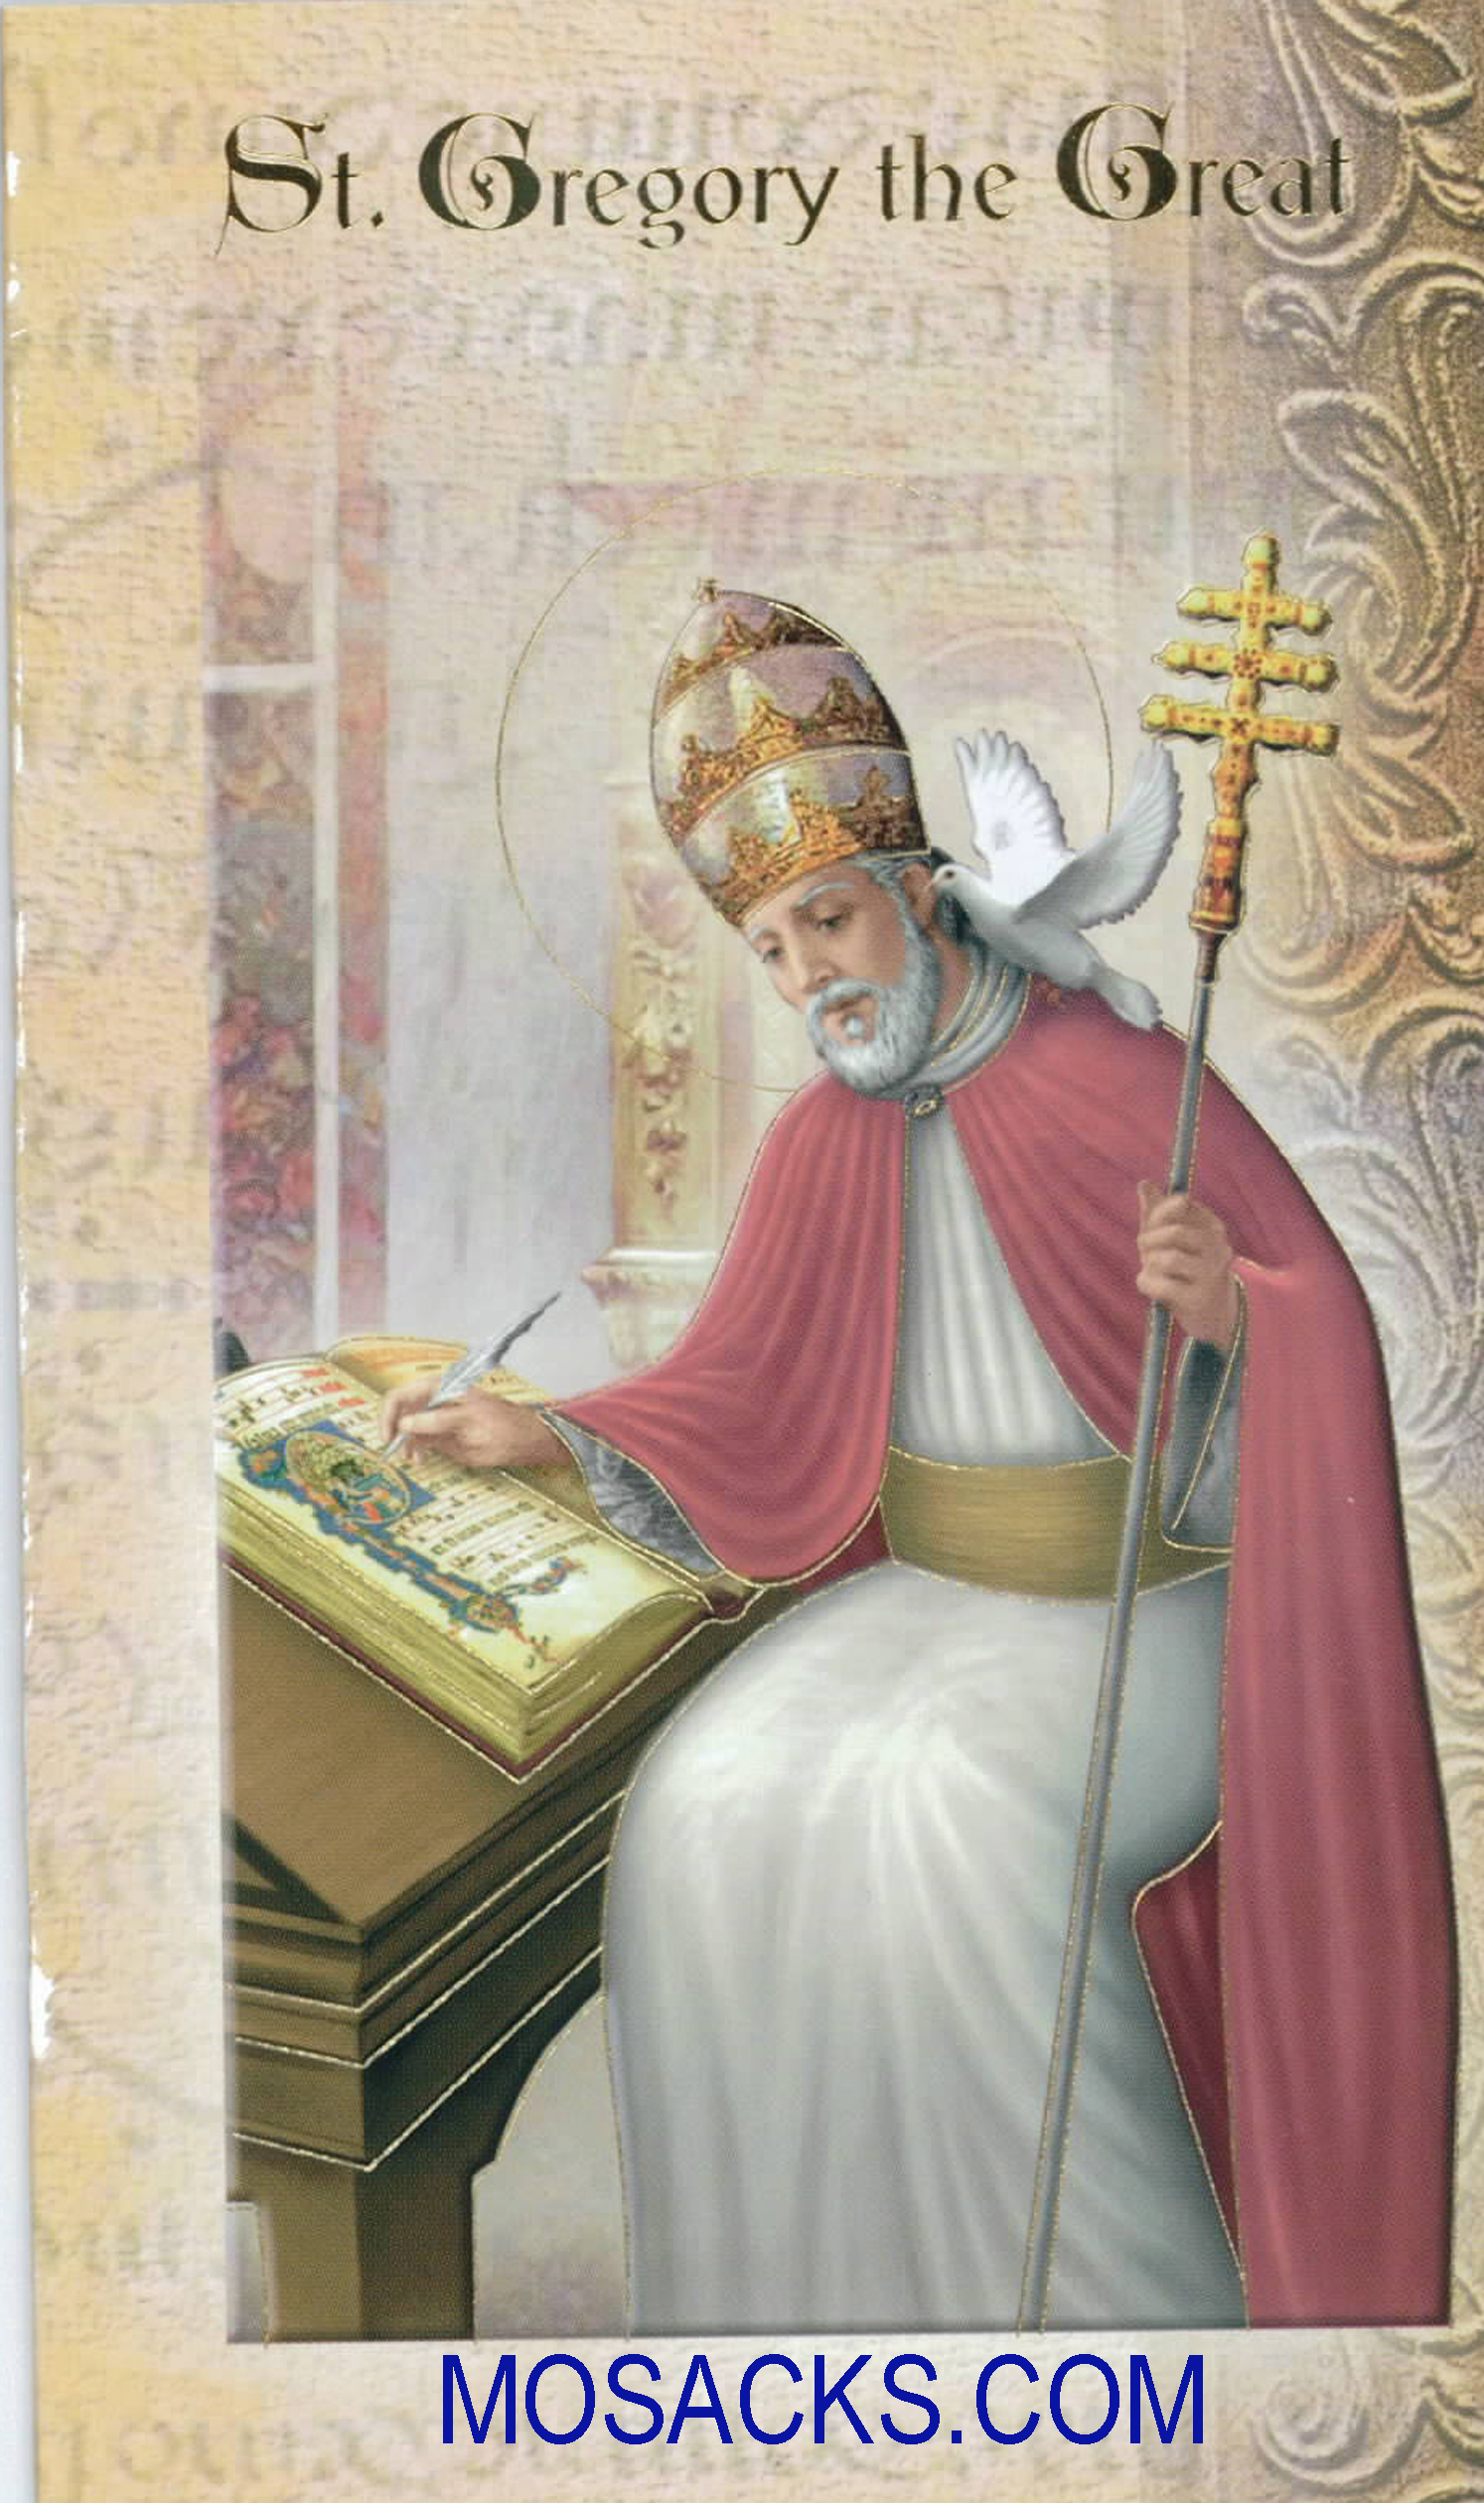 St. Gregory the Great Laminated Bi-fold Holy Card, F5-443